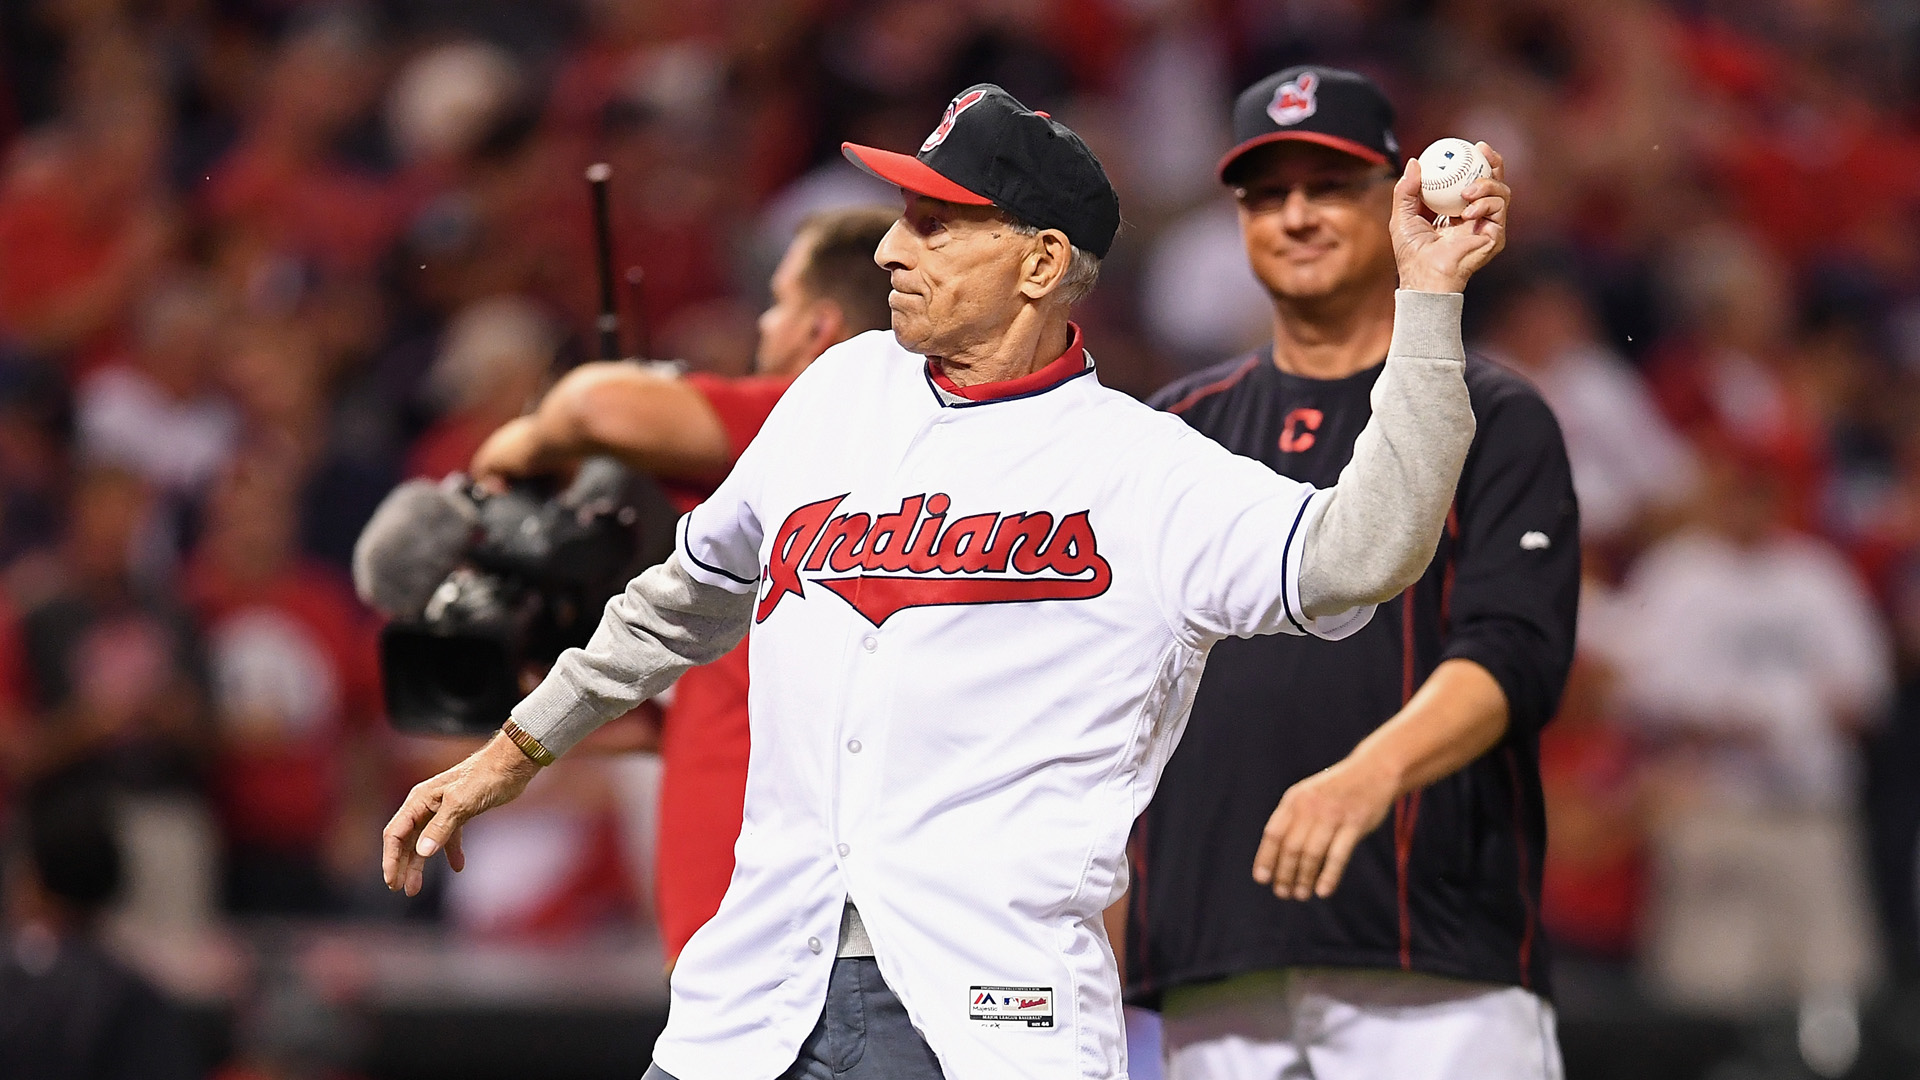 'Tito' Francona, MLB All-Star and father of Indians ...